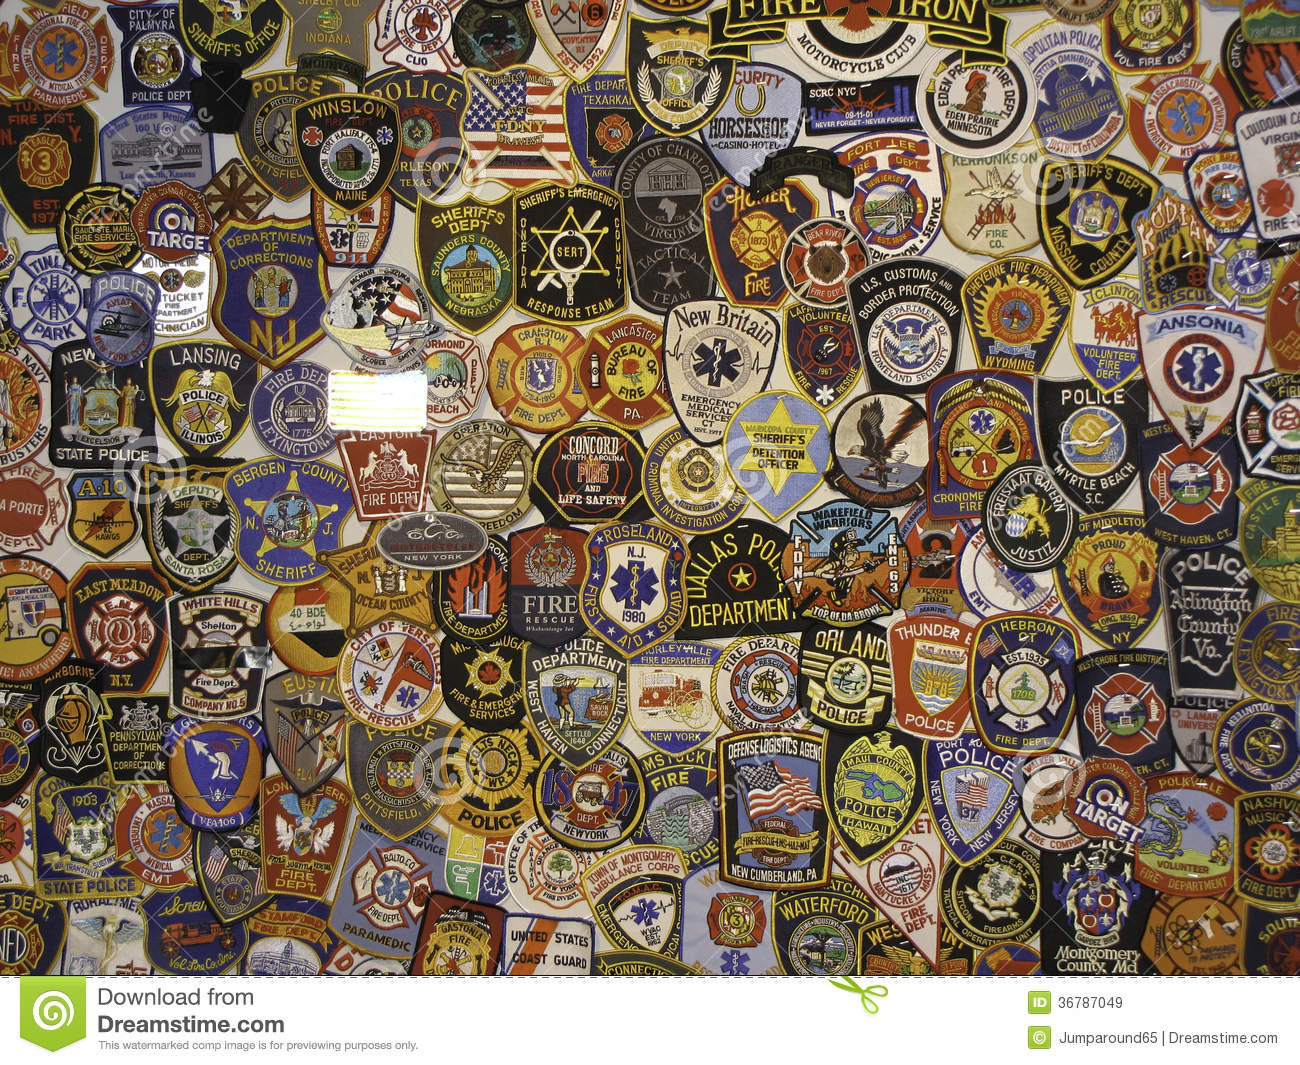 Police badges and patches